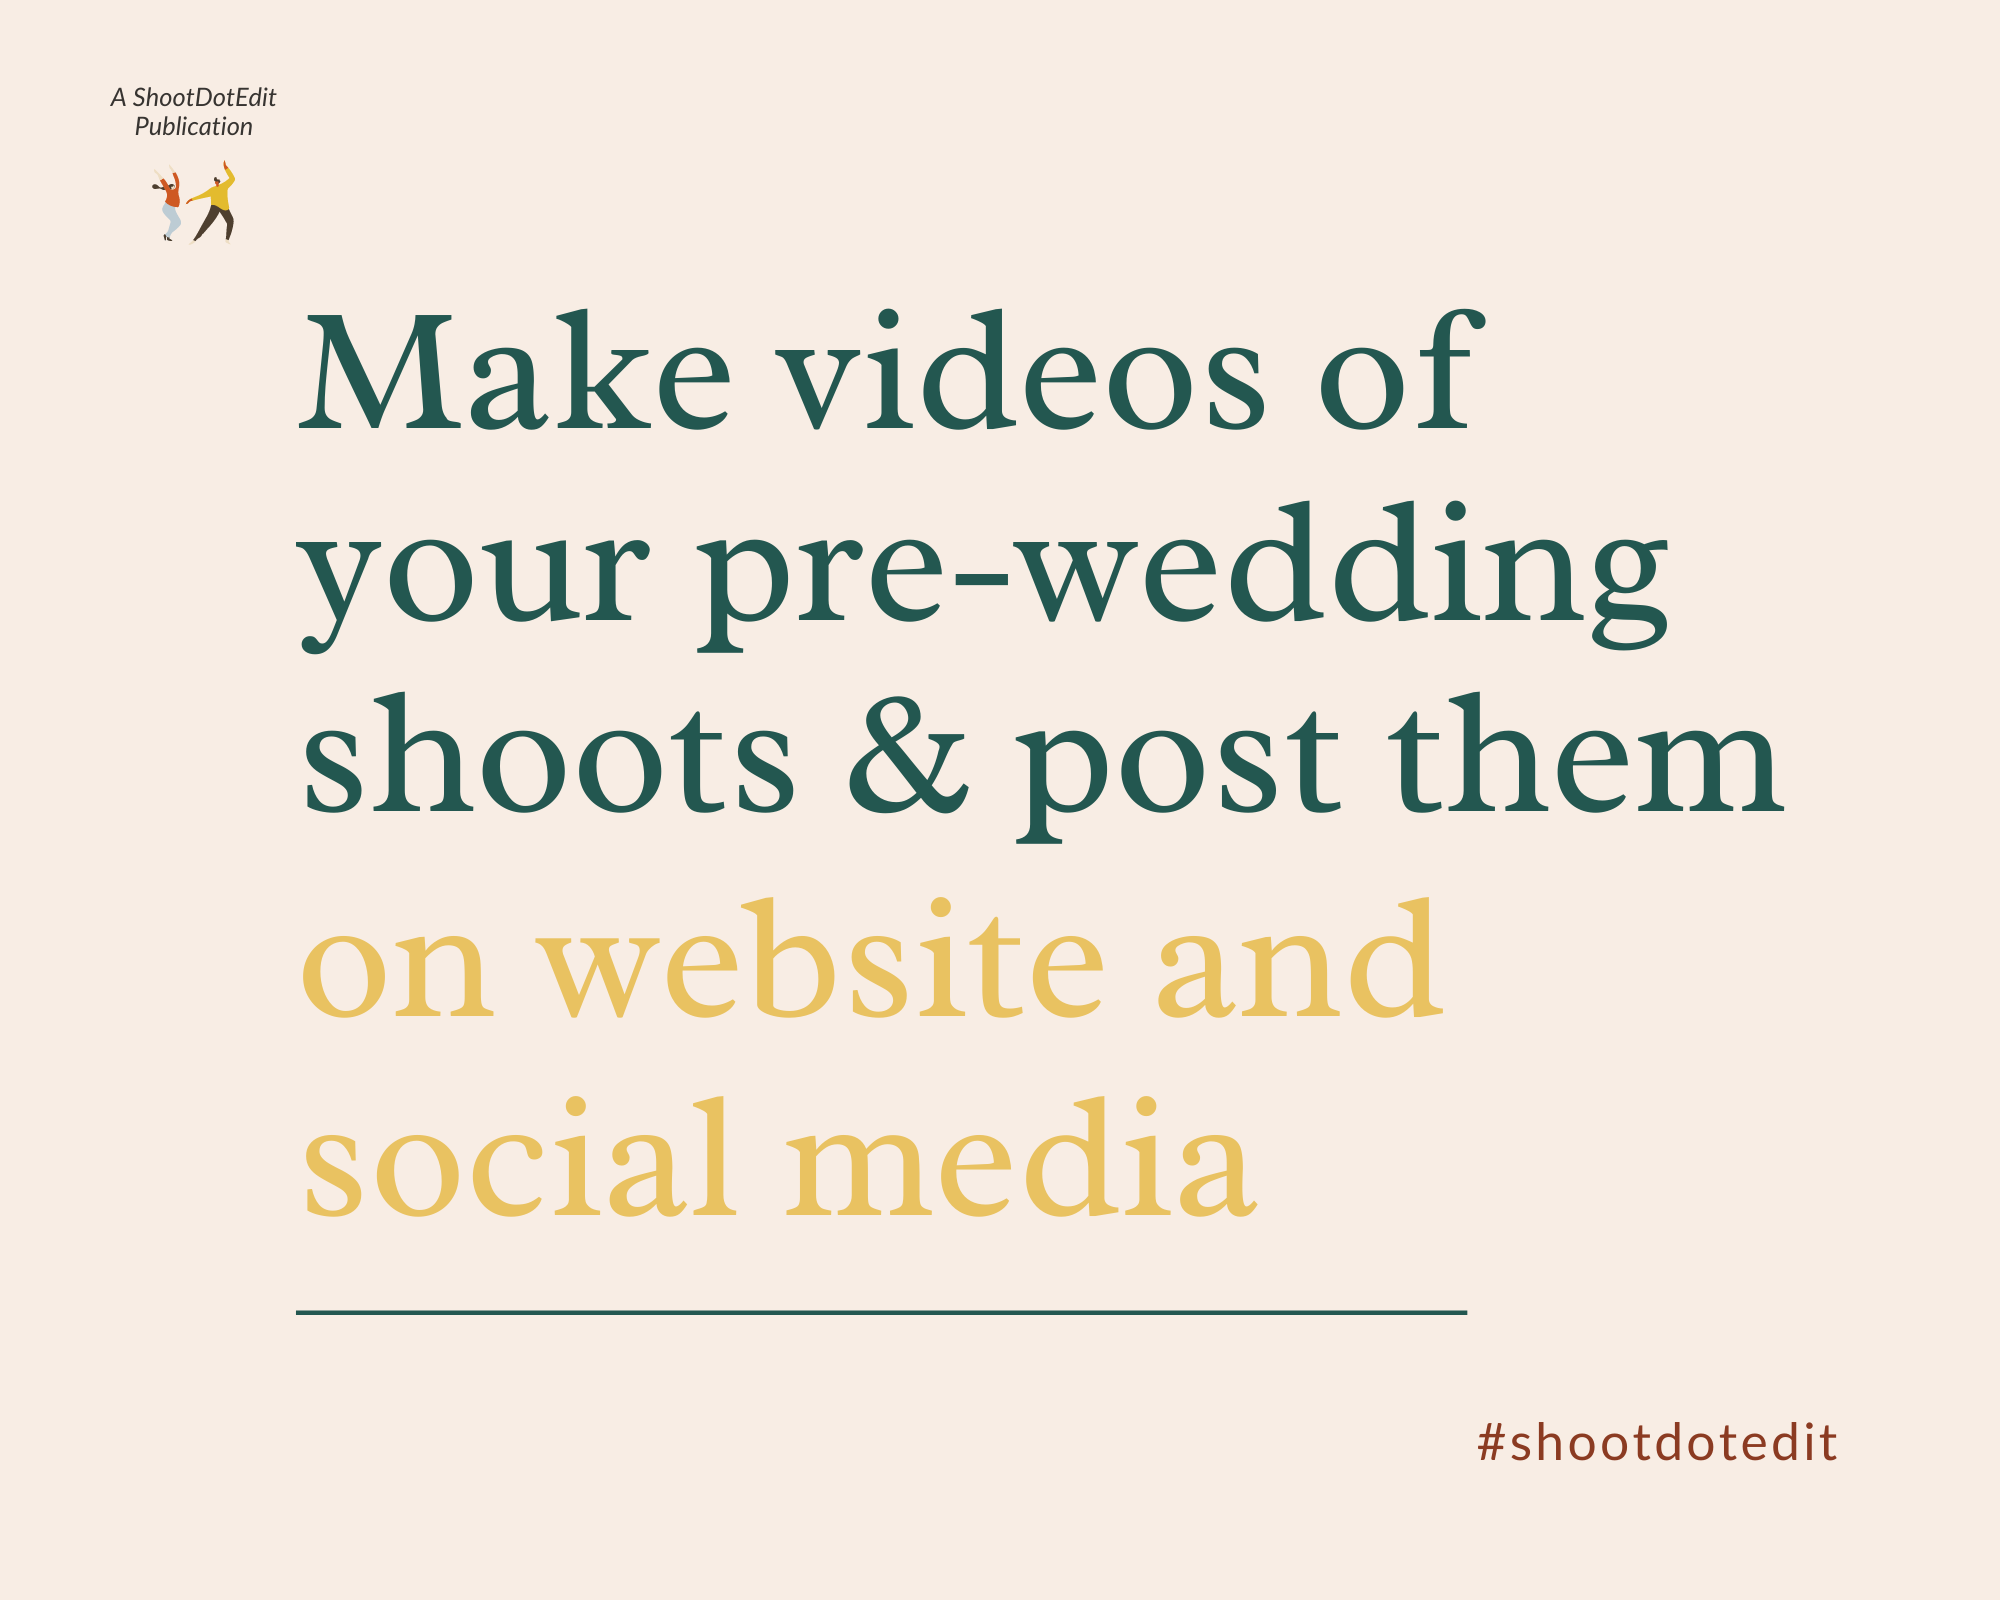 Infographic stating make videos of your pre-wedding shoots and post them on website and social media